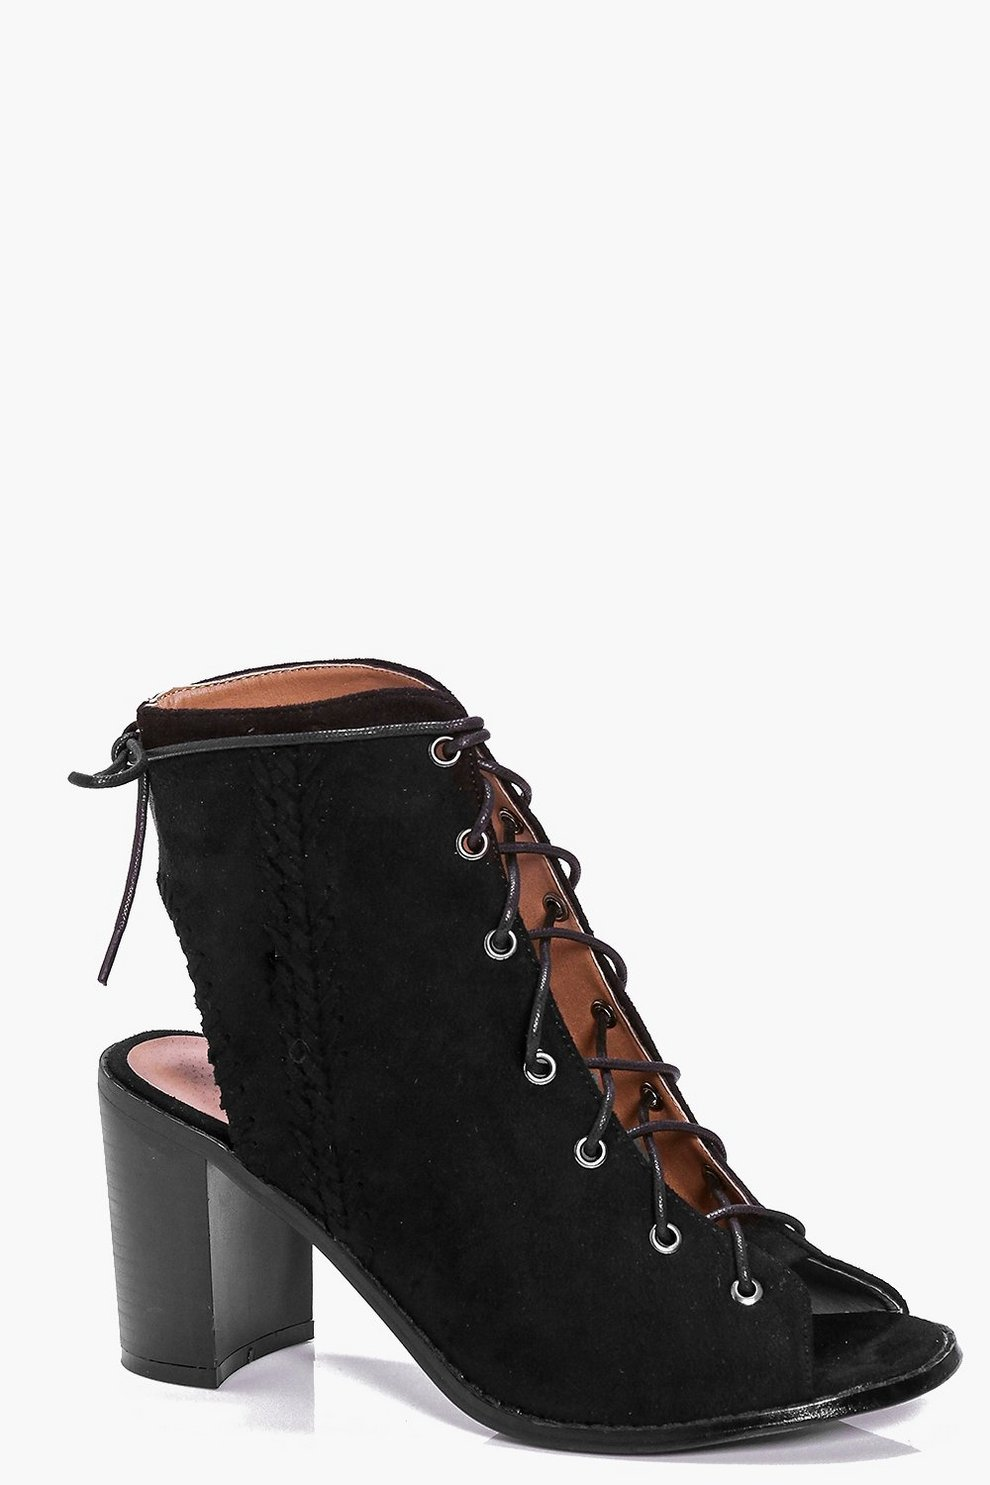 653ed54a5b1 Tilly Plaited Side Peeptoe Lace Up Shoe Boot